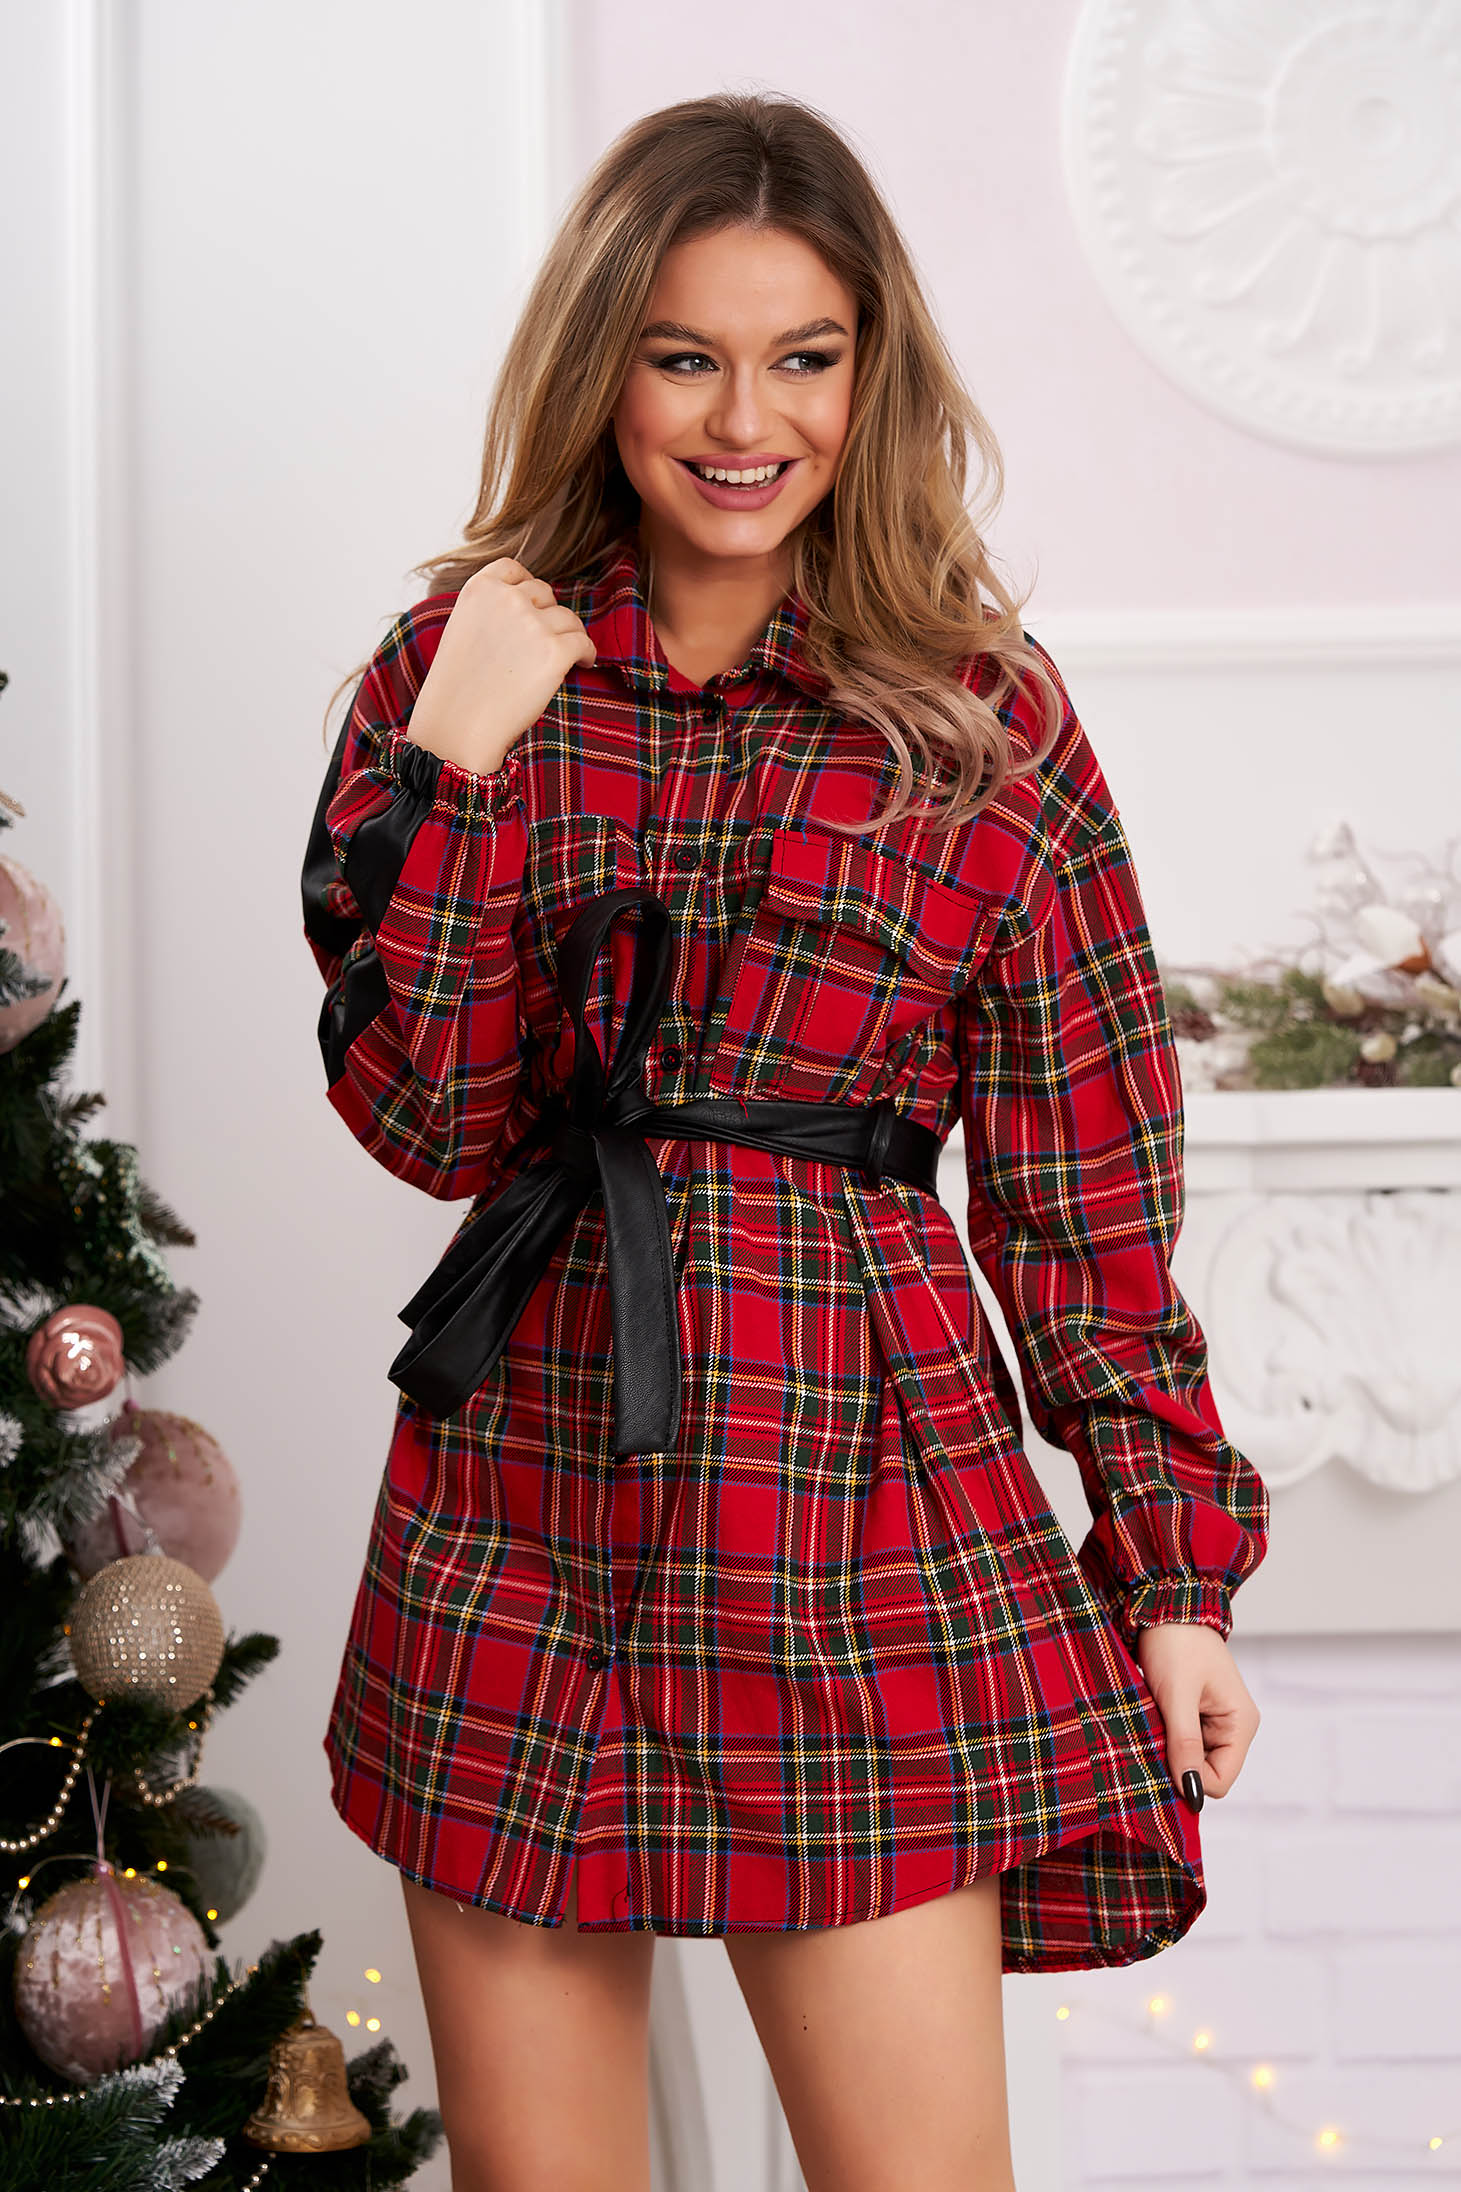 Red dress shirt dress flared accessorized with belt with chequers